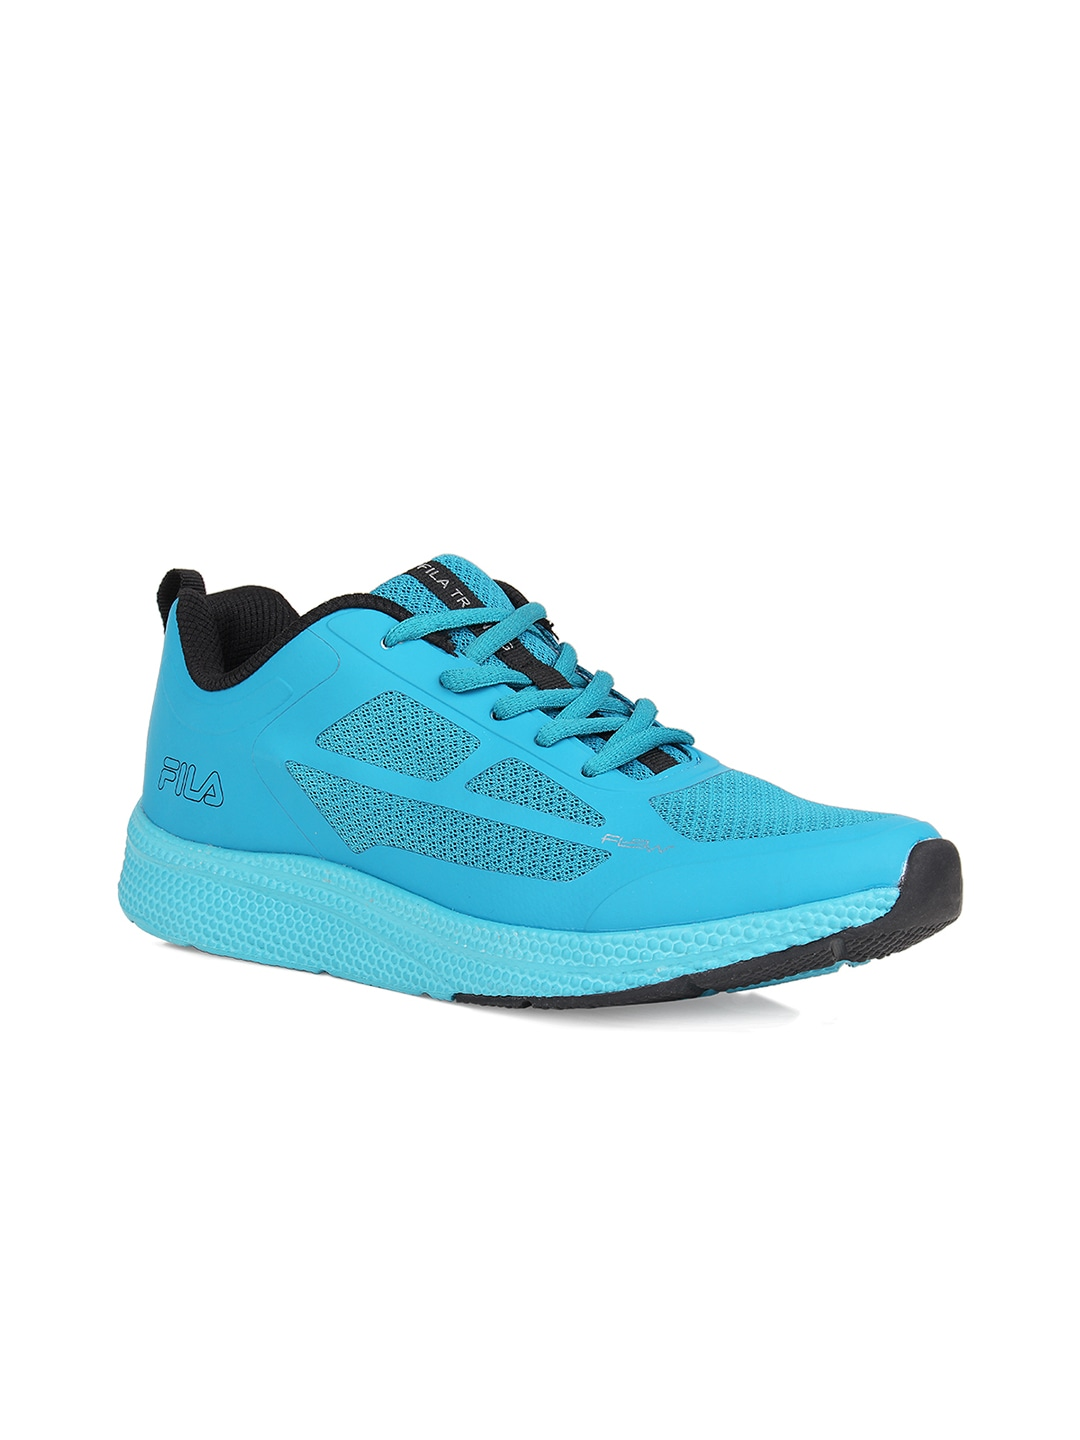 Blue PU Training or Gym Shoes